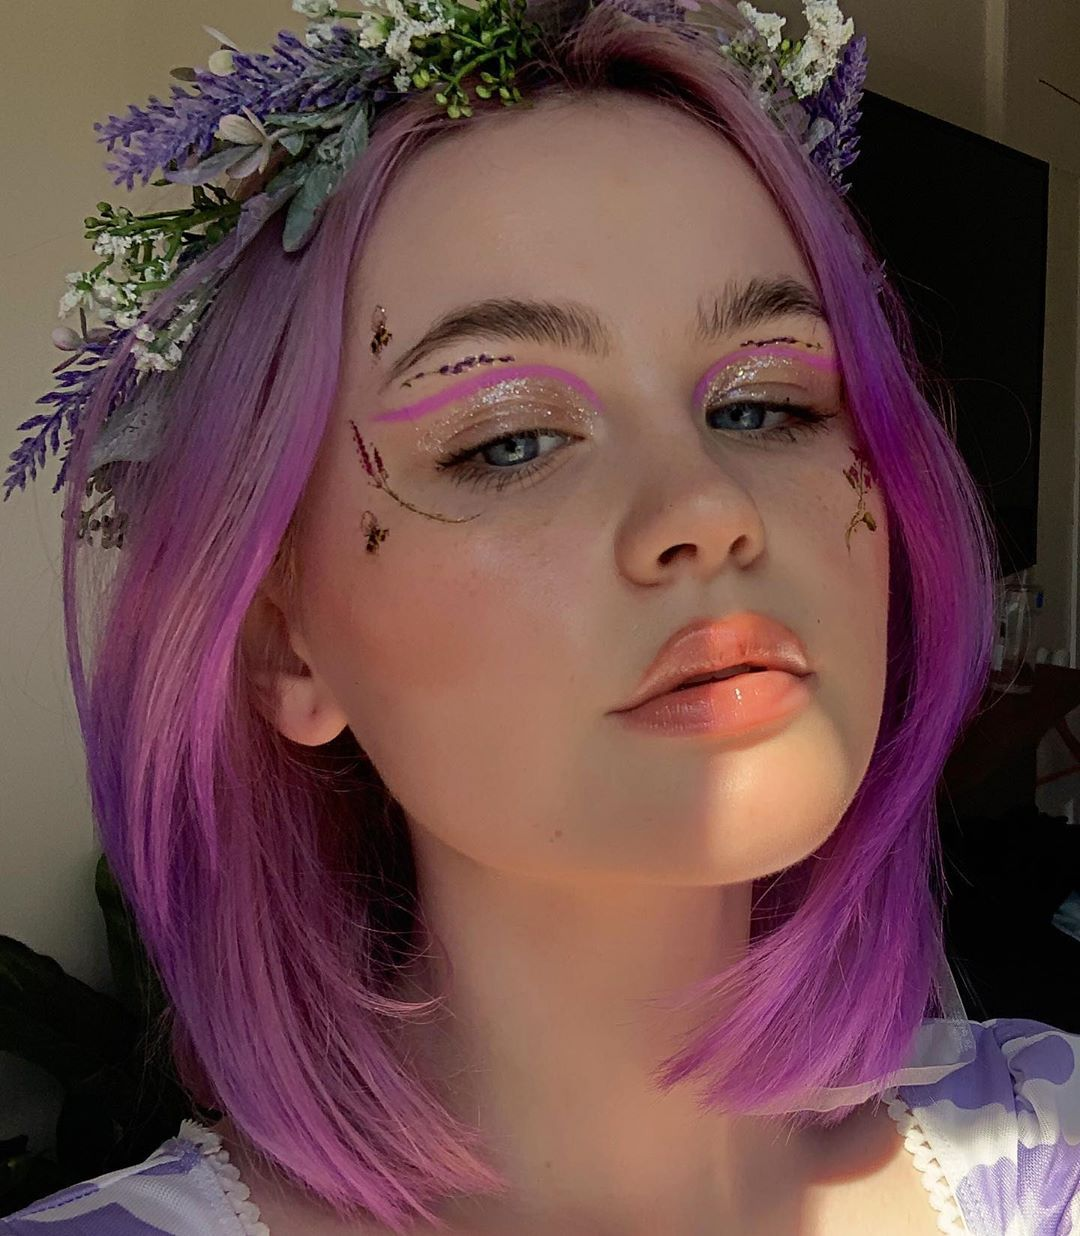 Ellie Addis On Instagram I Dyed My Hair Purple And Its Kind Of Patchy But Its Fine Bc Im Dyeing It A Different Colour In Like In 2020 Dye My Hair